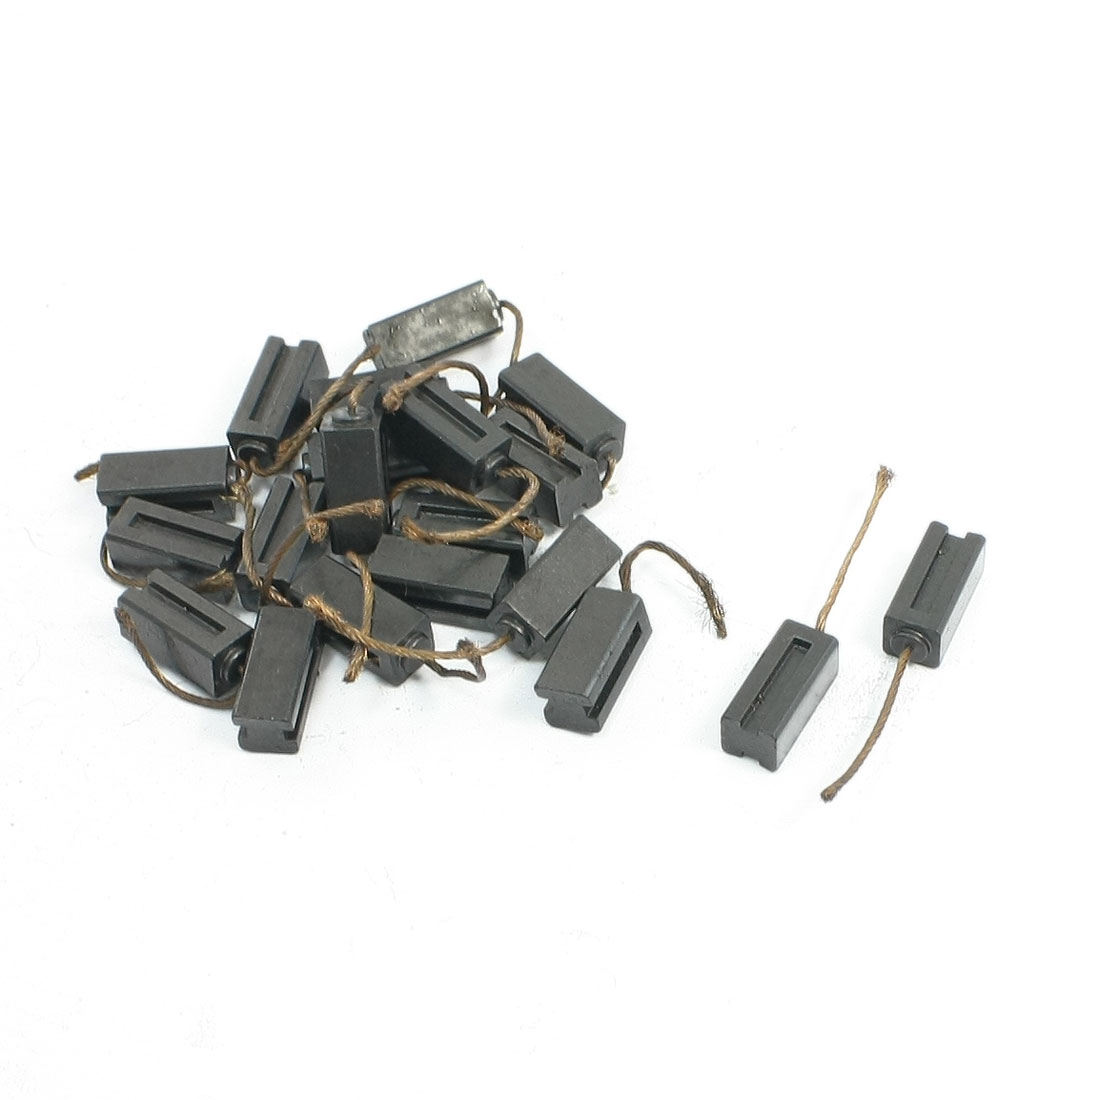 "20 Pcs Power Tool Replacement 1/4"" x 1/4"" x 9/16"" Motor Carbon Brushes"